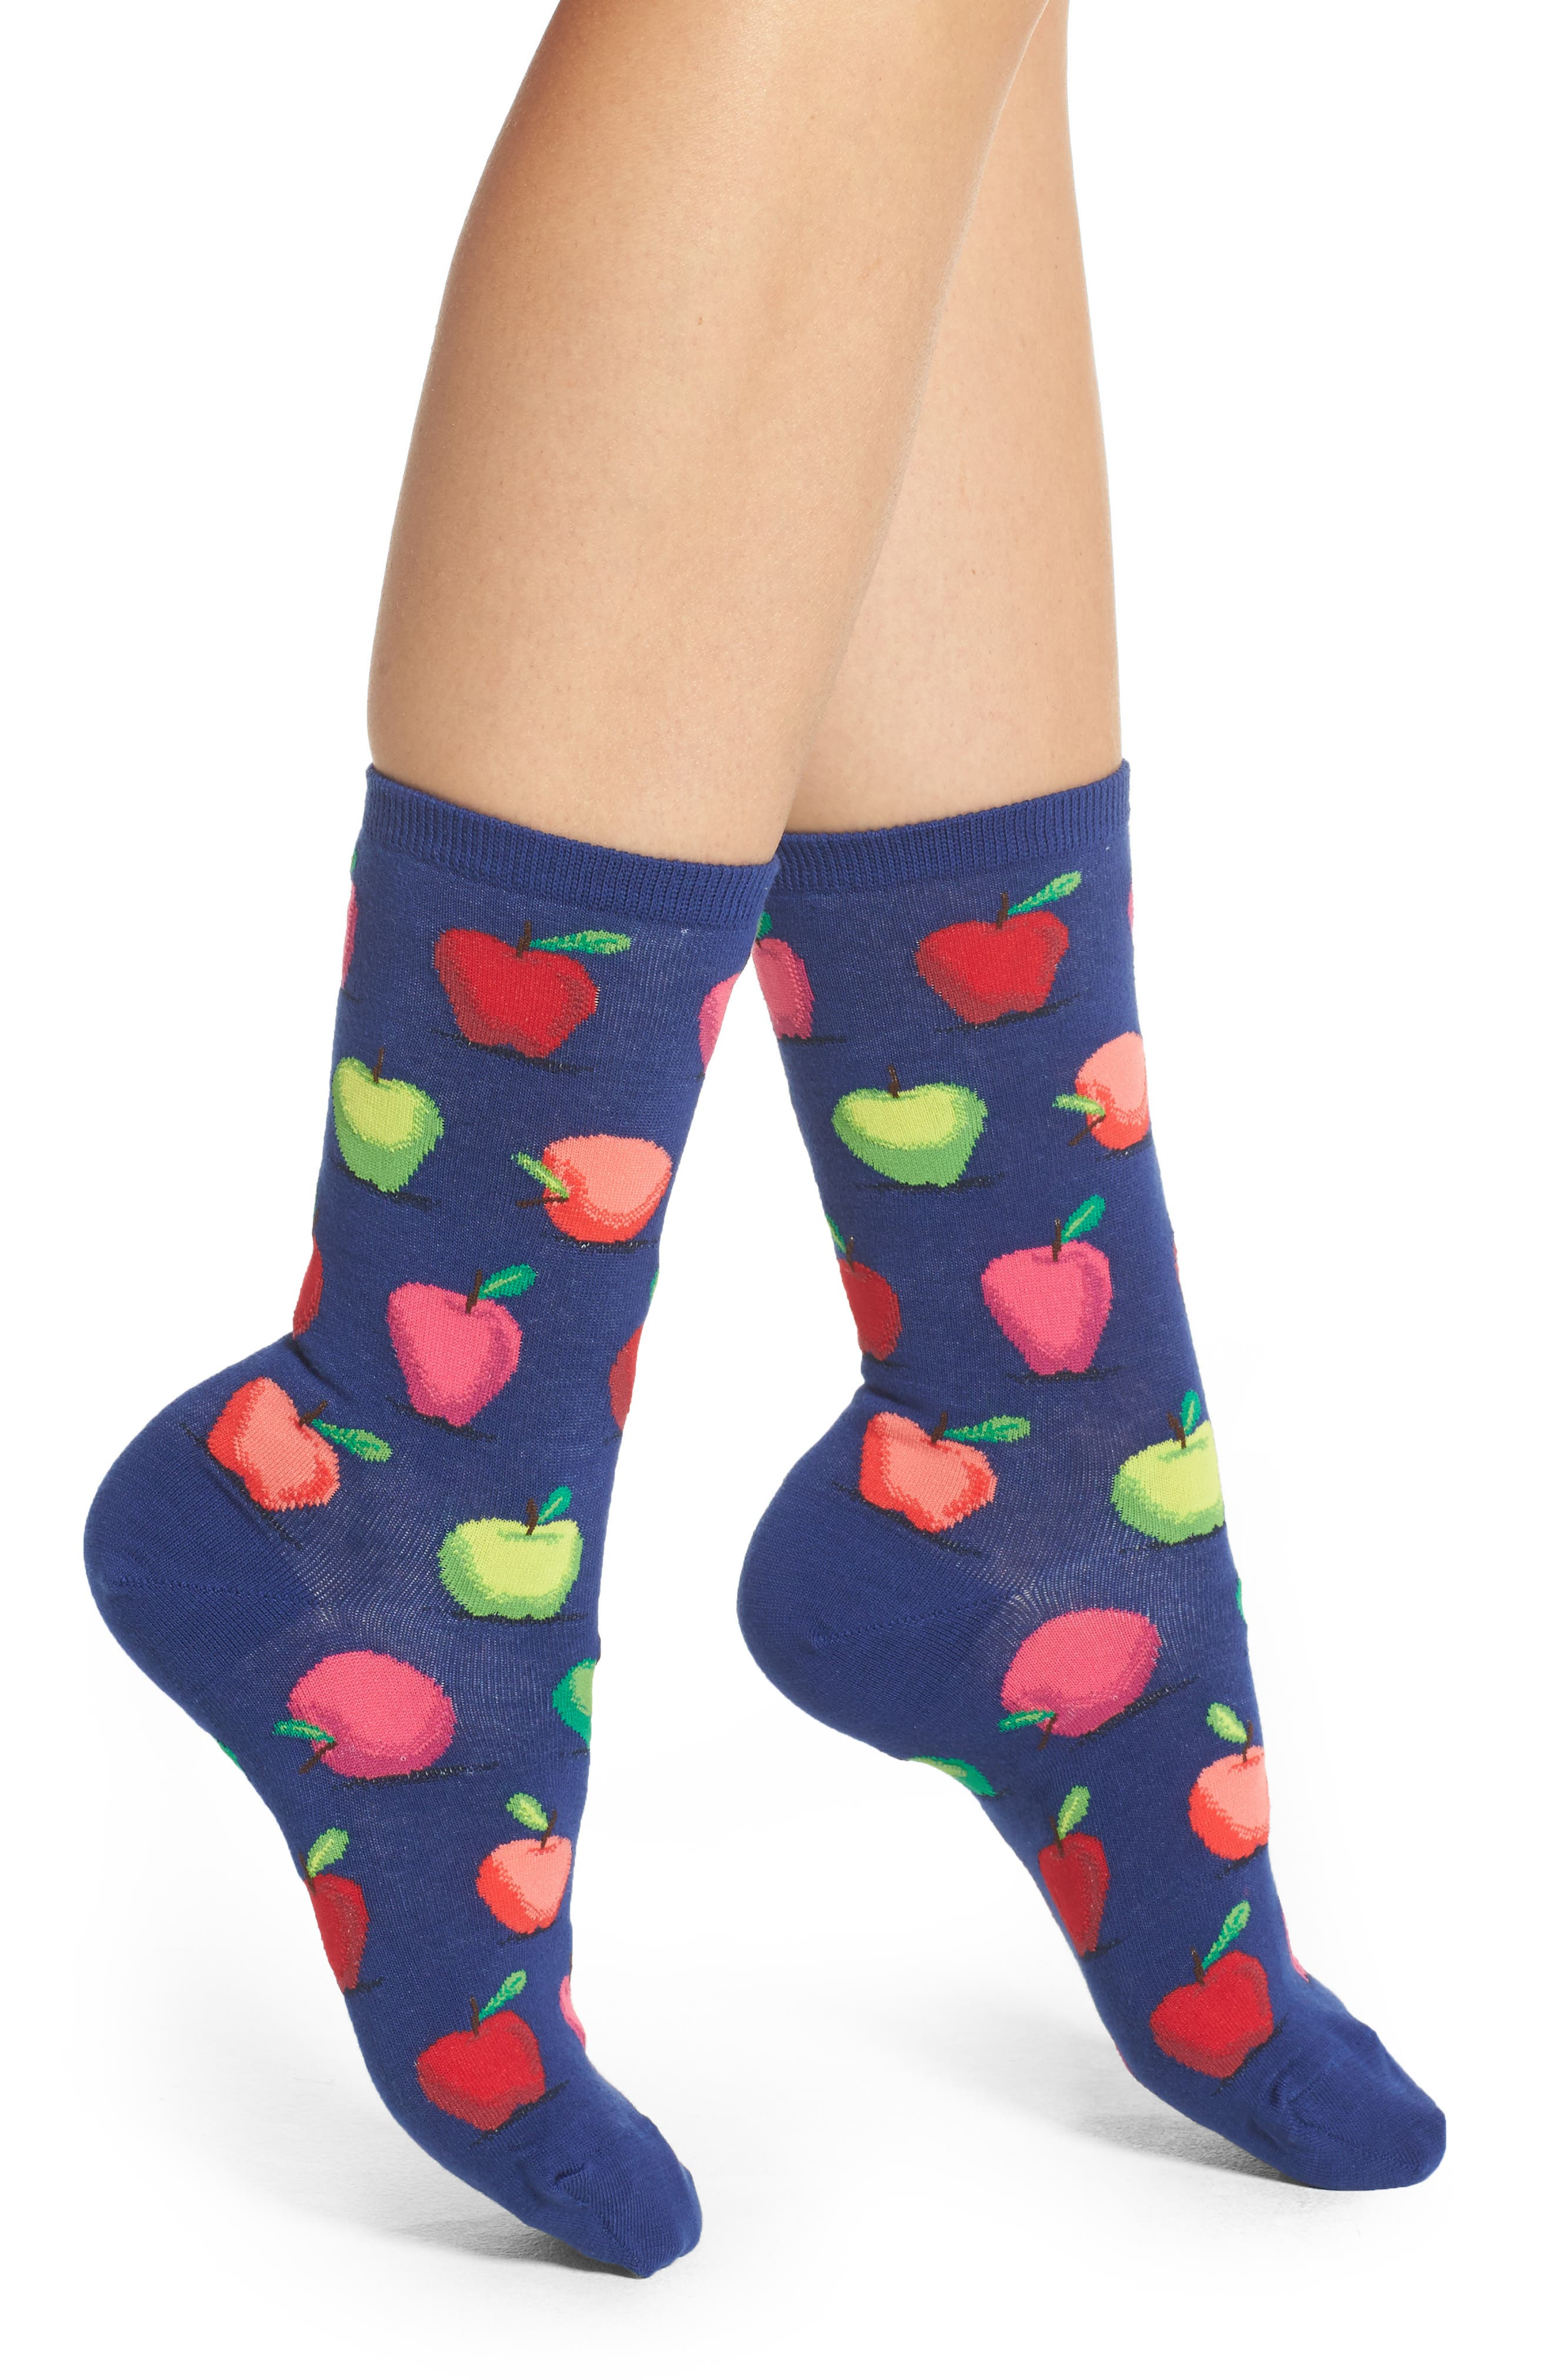 Main Image - Hot Sox Apples Crew Socks (3 for $15)